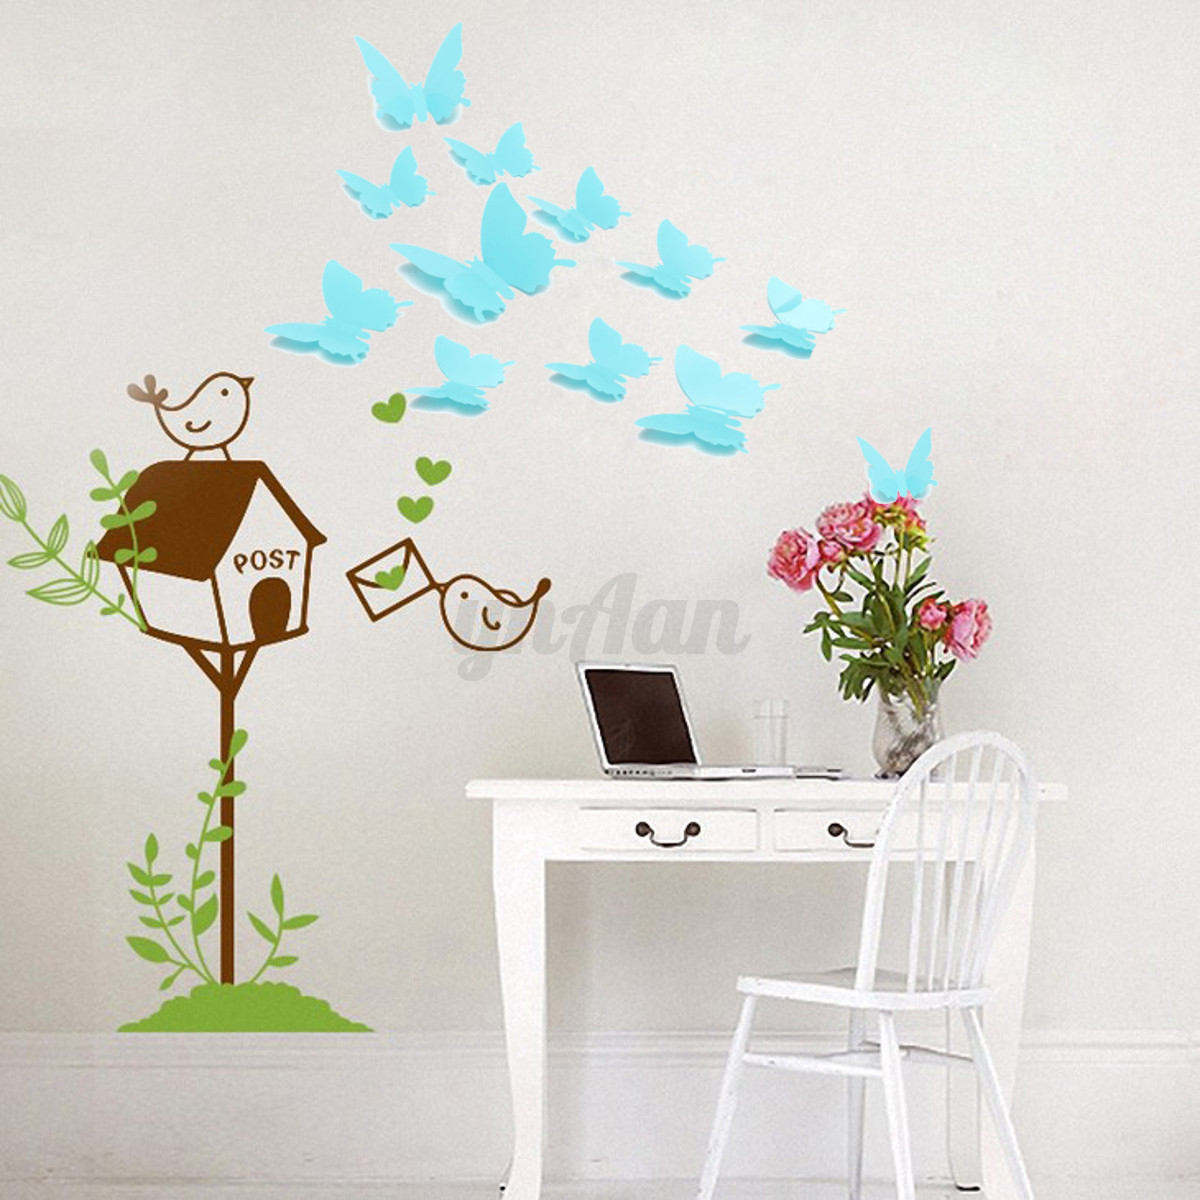 12pc diy 3d papillon color autocollant sticker mural adh sif d co salon chambre ebay. Black Bedroom Furniture Sets. Home Design Ideas